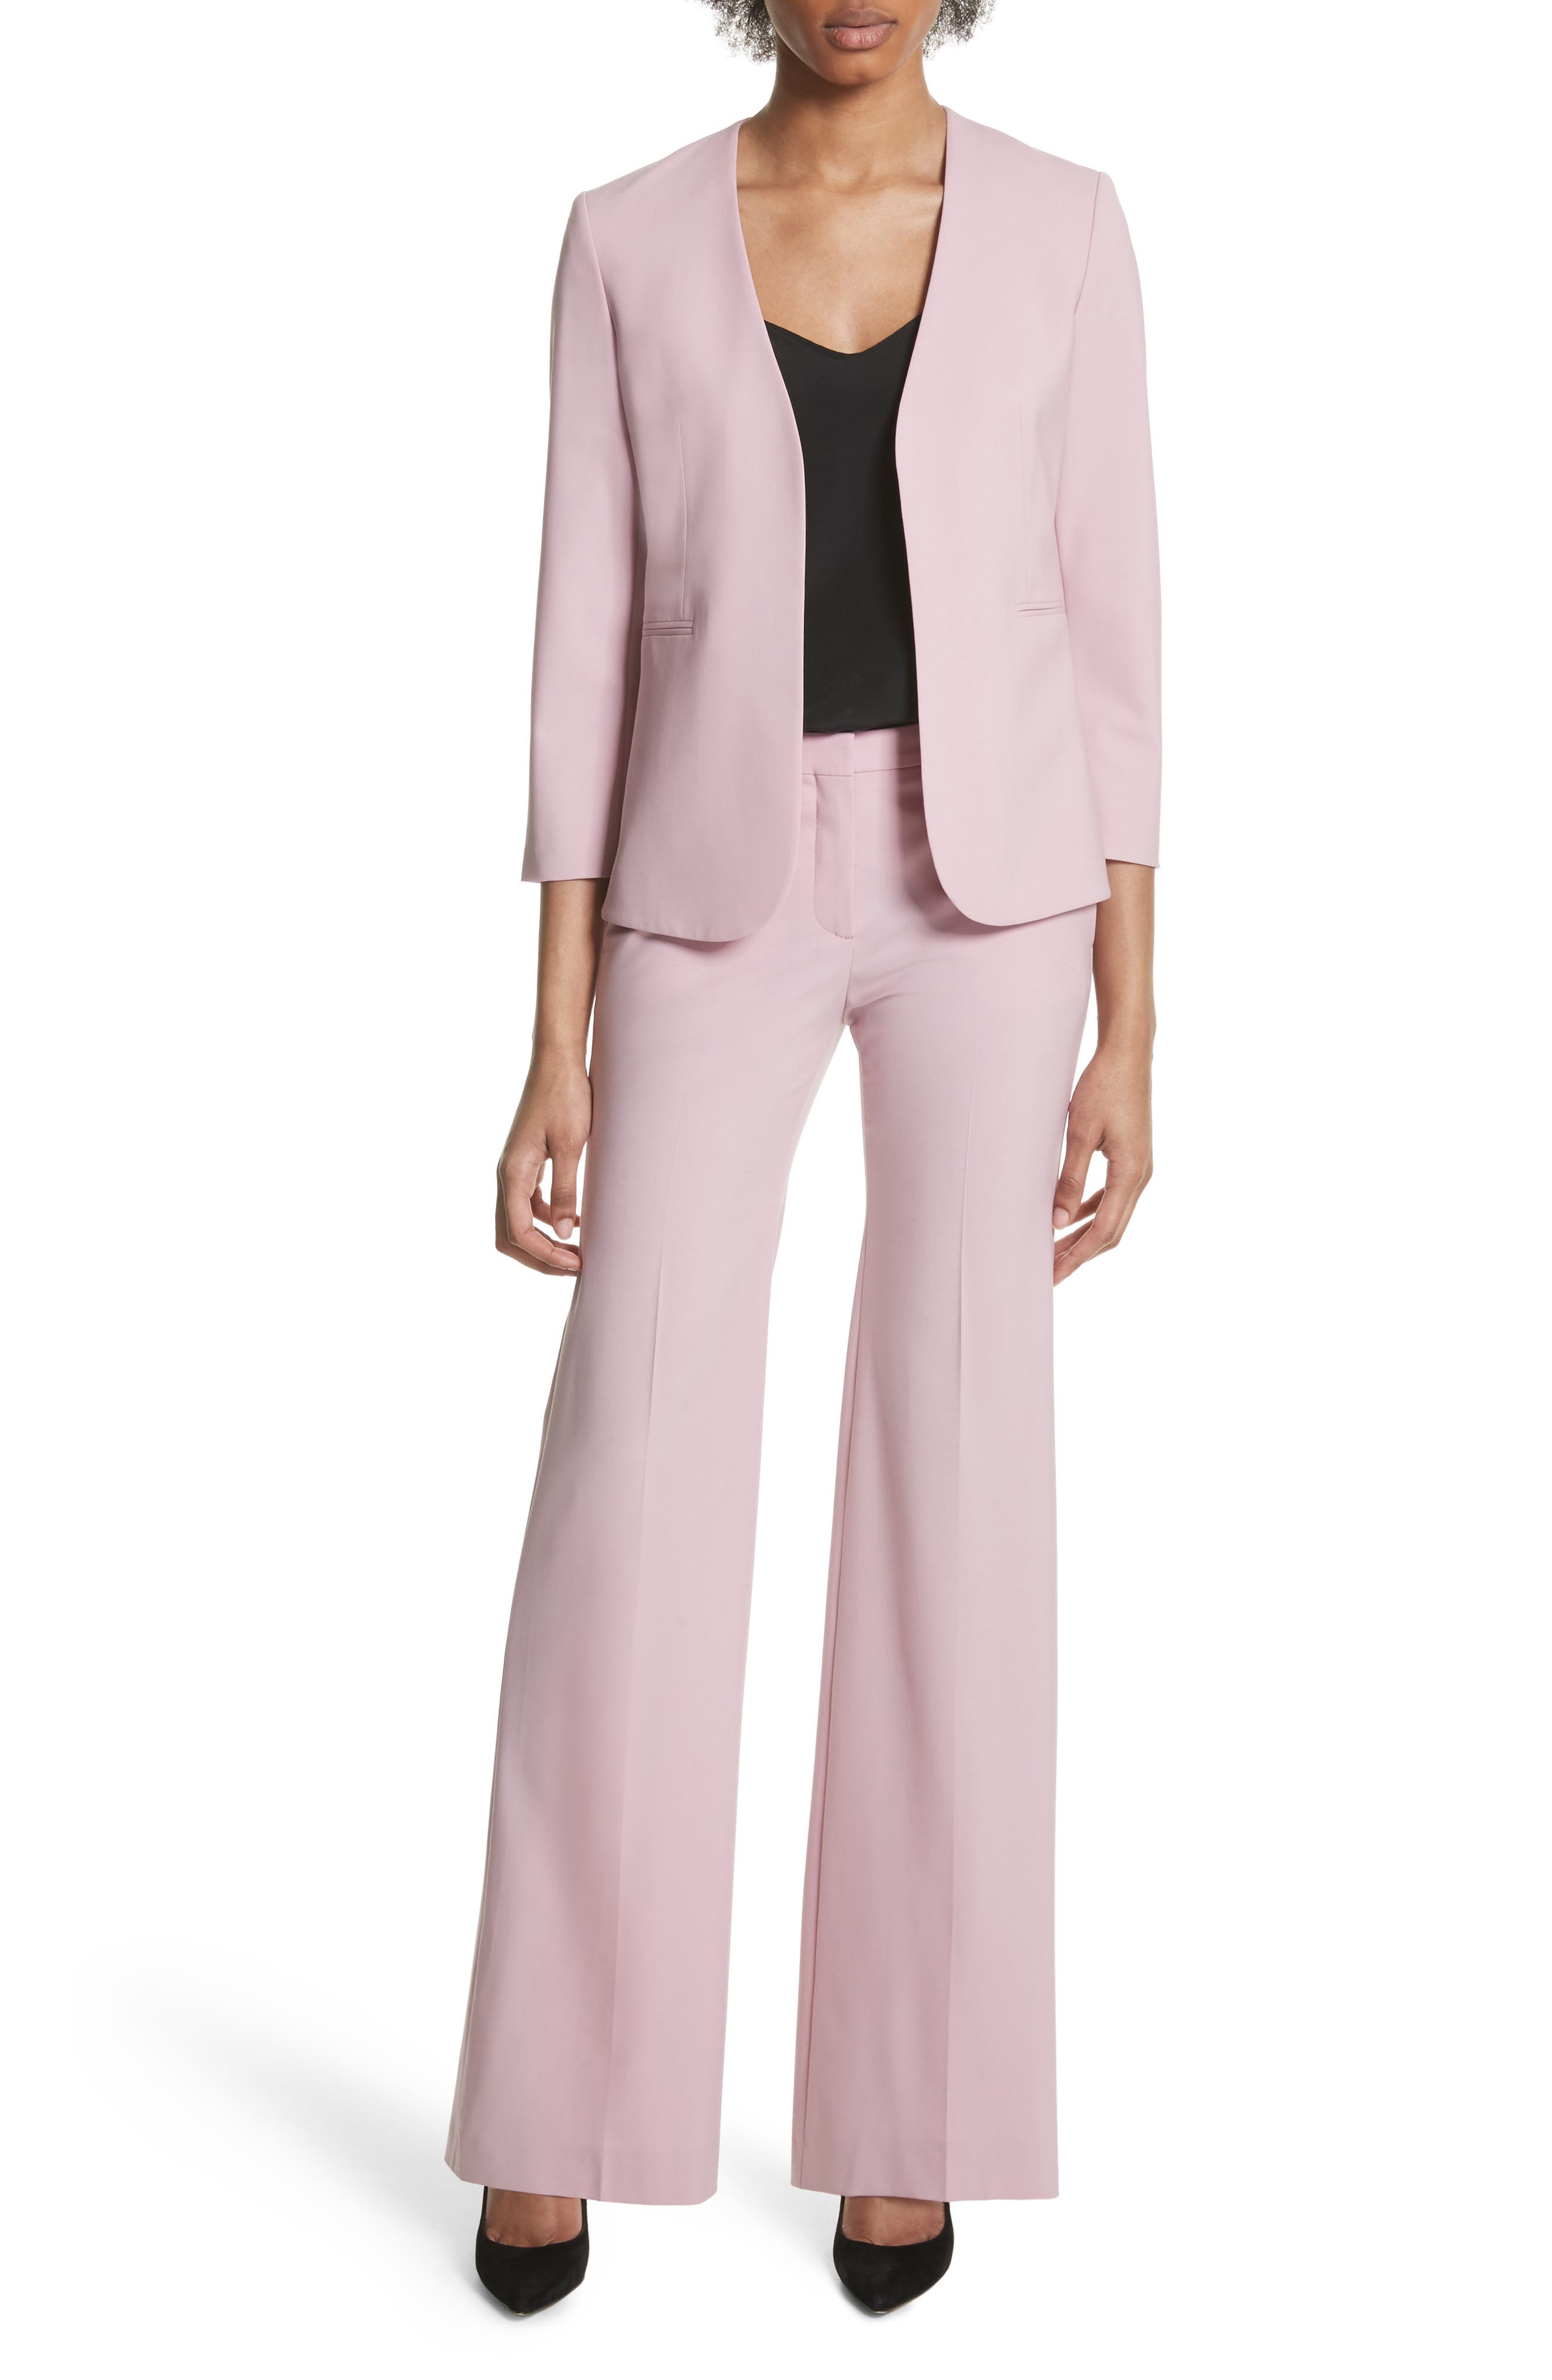 Lindrayia B Good Wool Suit Jacket,                             Alternate thumbnail 5, color,                             Berry Tint